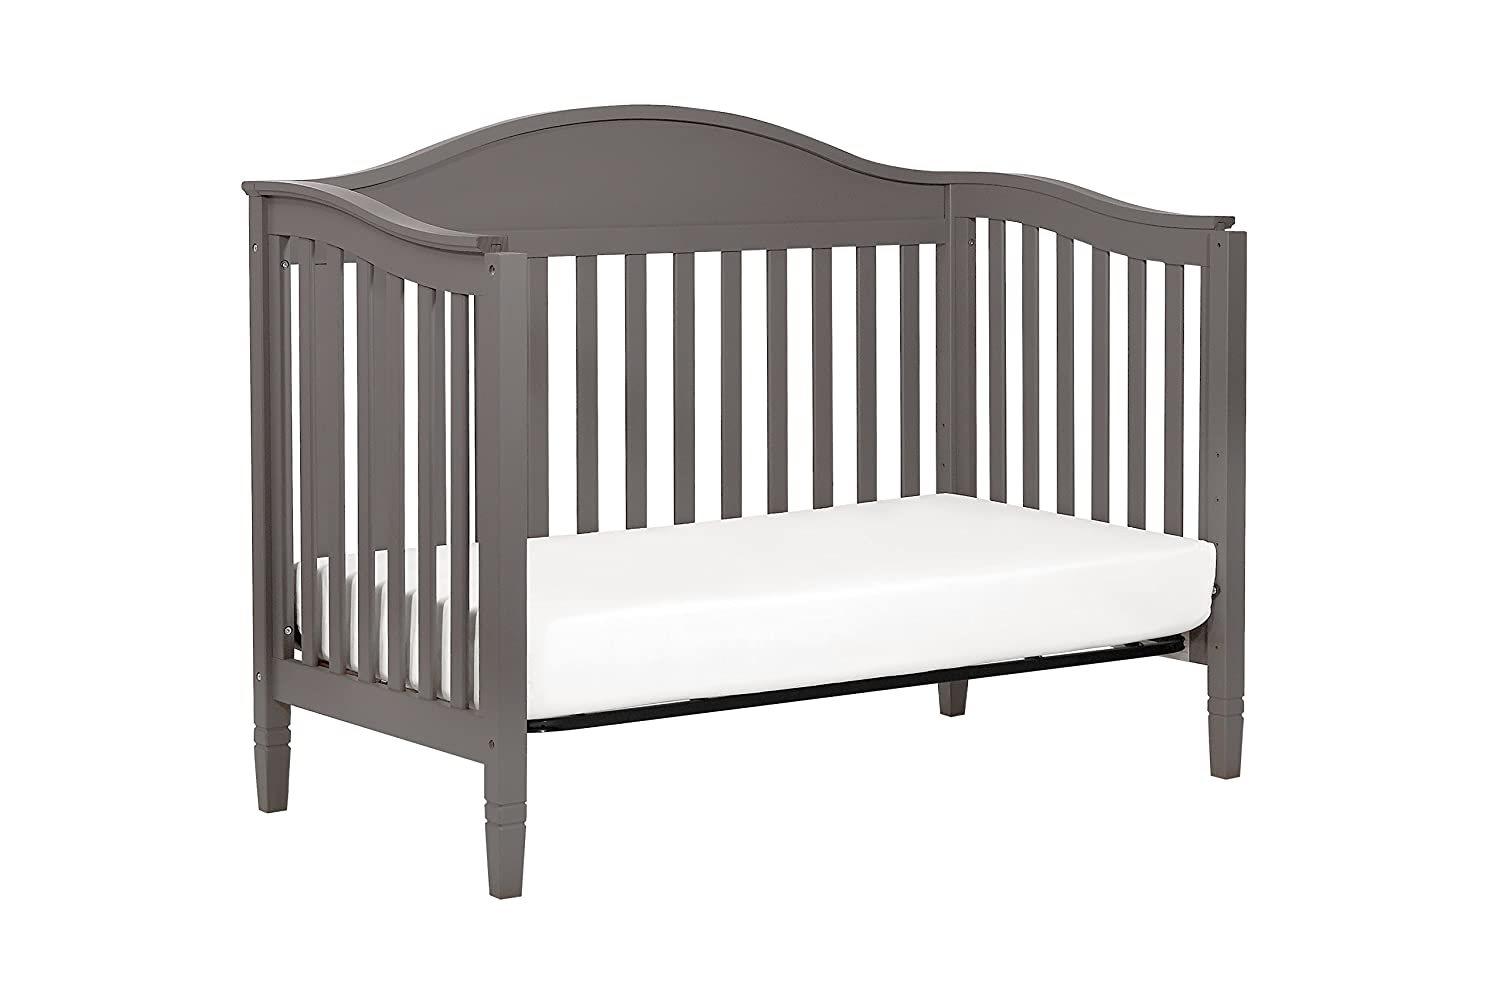 Amazon.com : DaVinci Laurel 4-in-1 Convertible Crib in Slate Finish : Baby